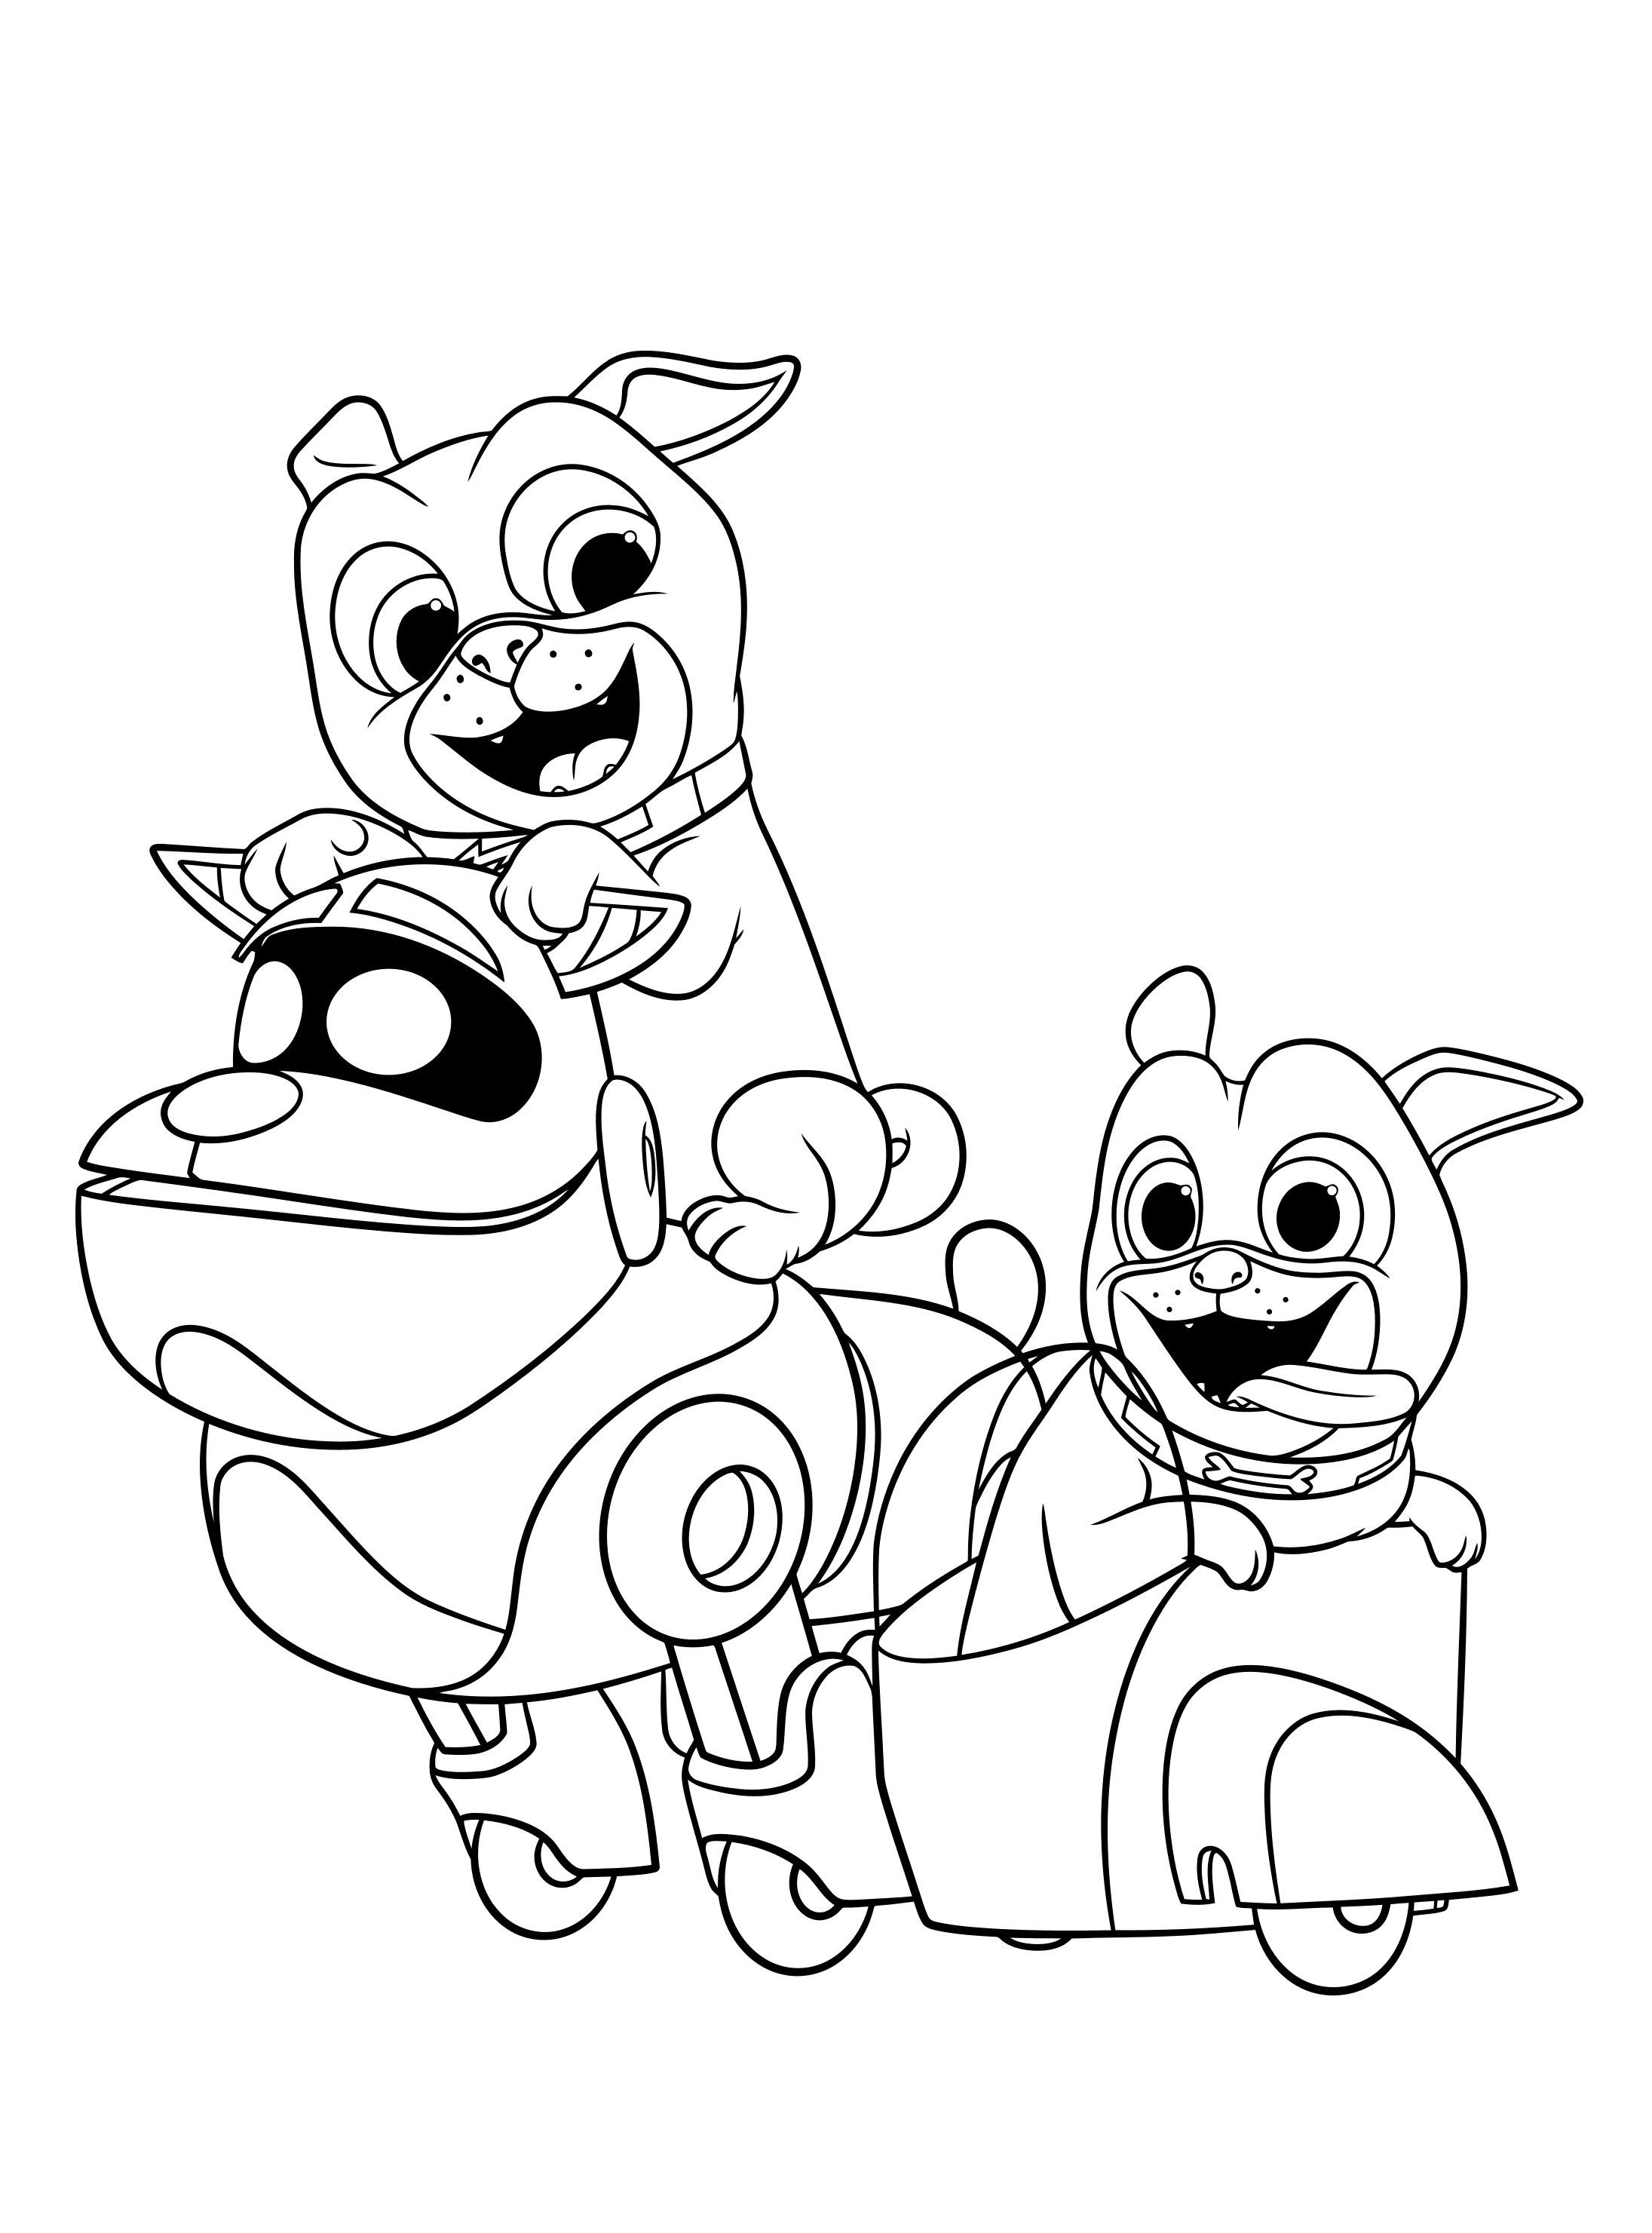 coloring pages of puppies puppy dog pals and arf colouring image puppies pages of coloring